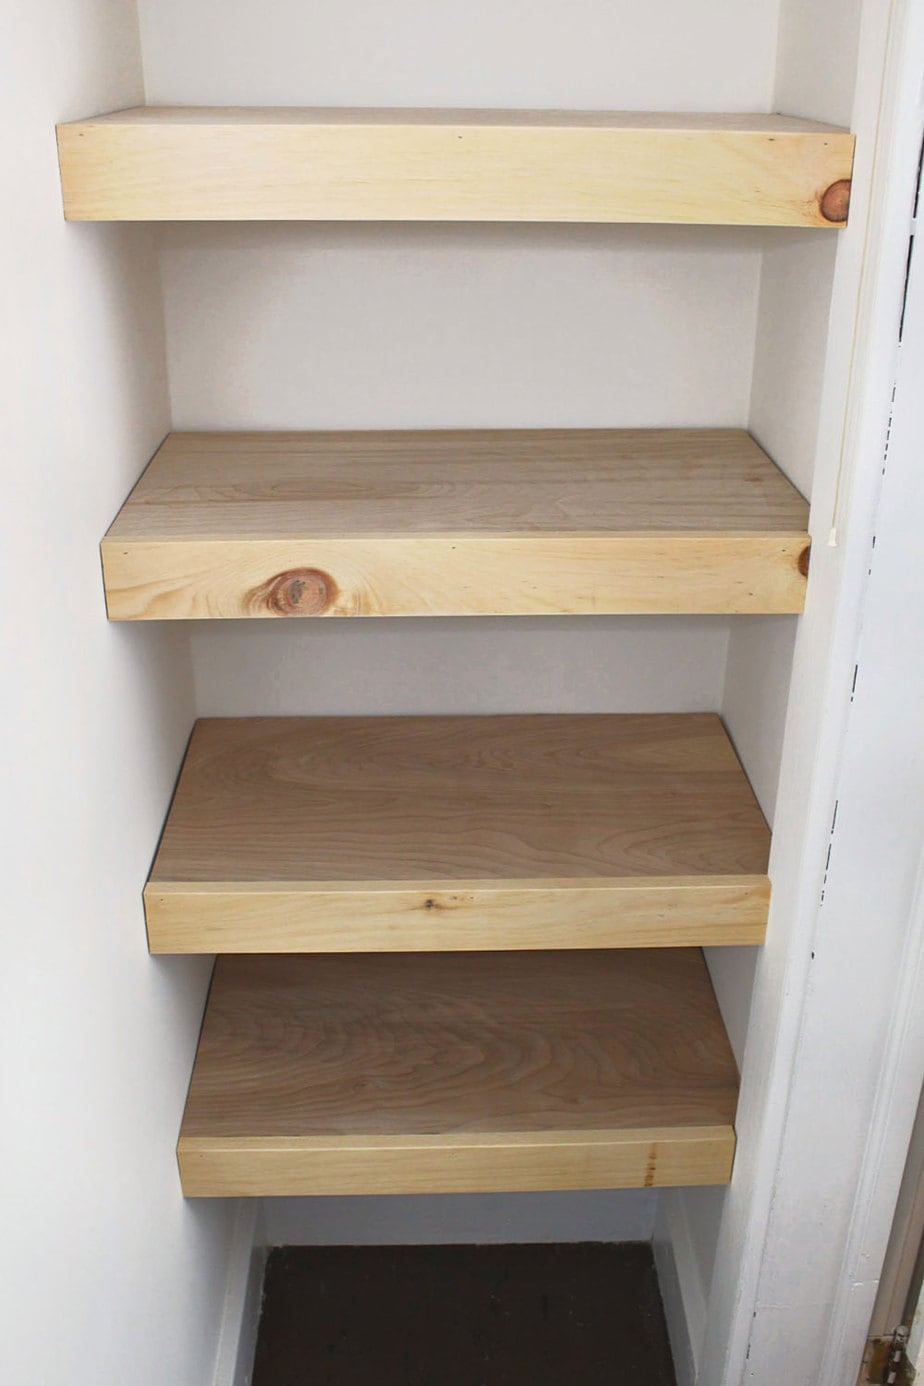 plywood shelves with trim